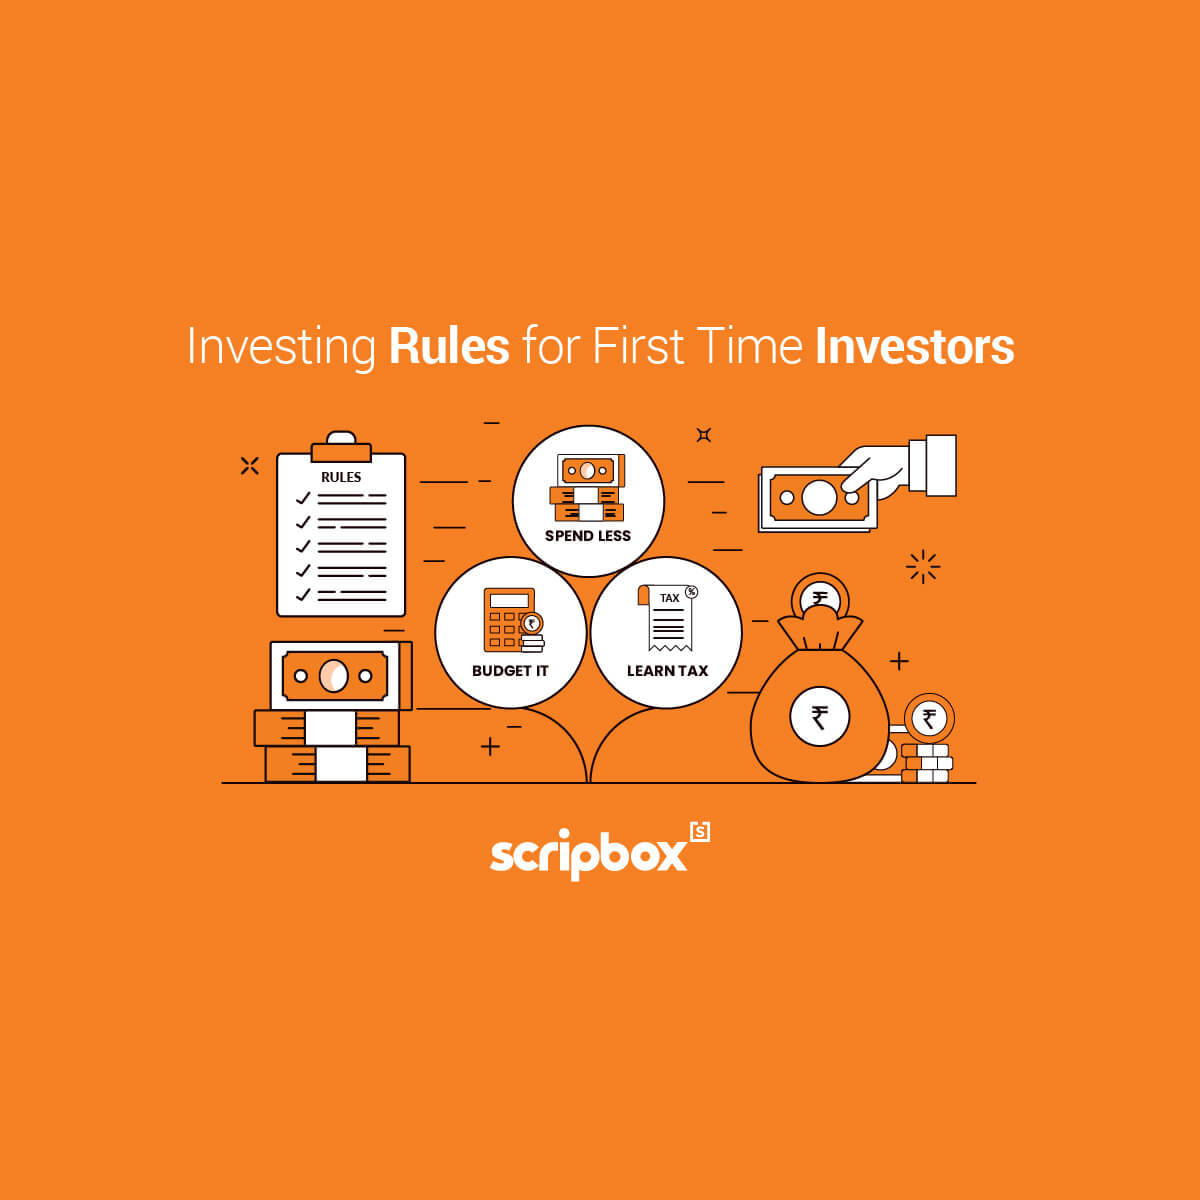 rules for first time investors